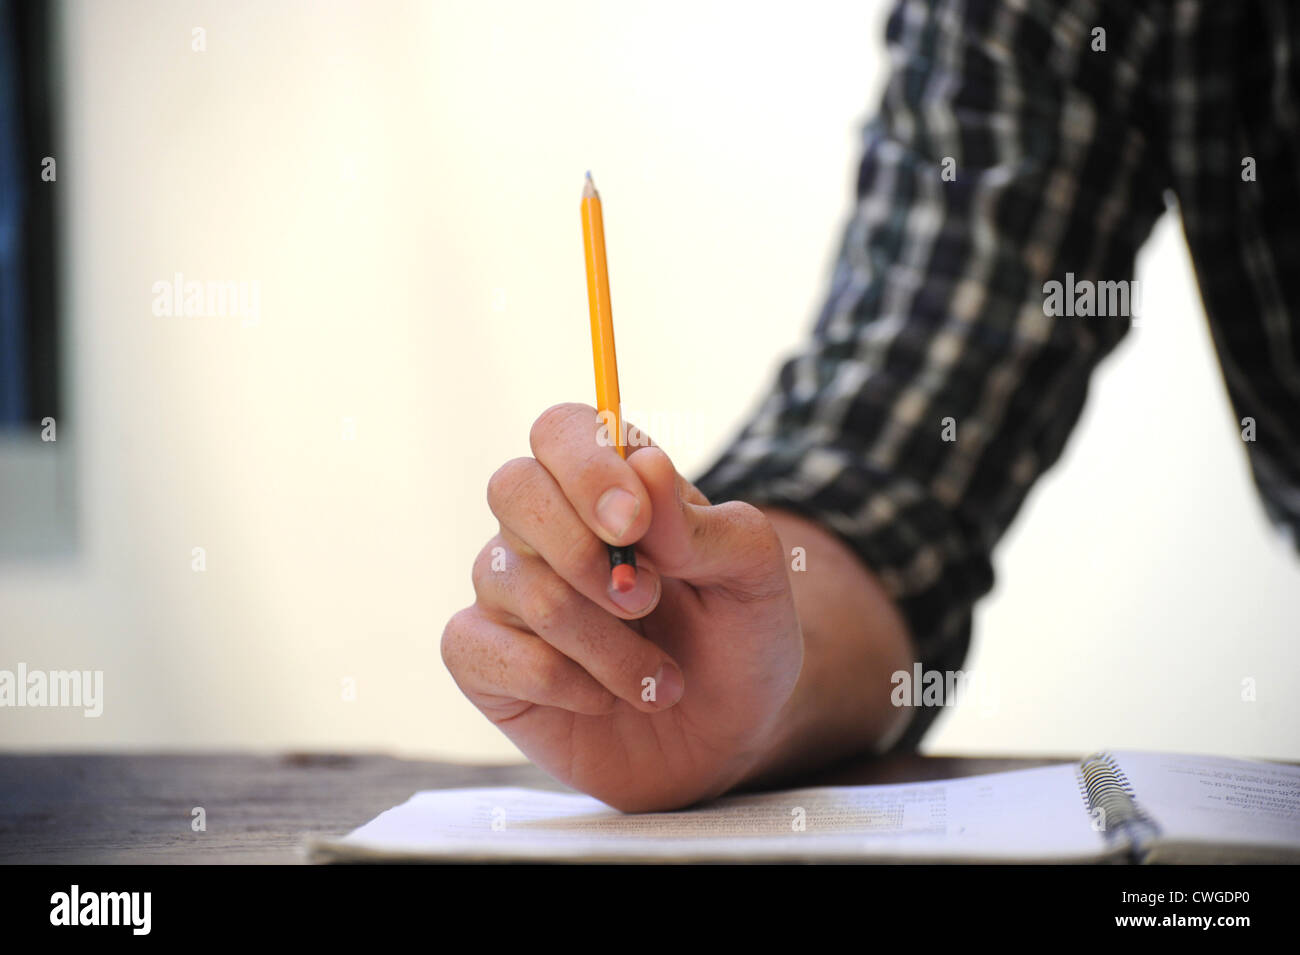 paperwork pencil hand - Stock Image